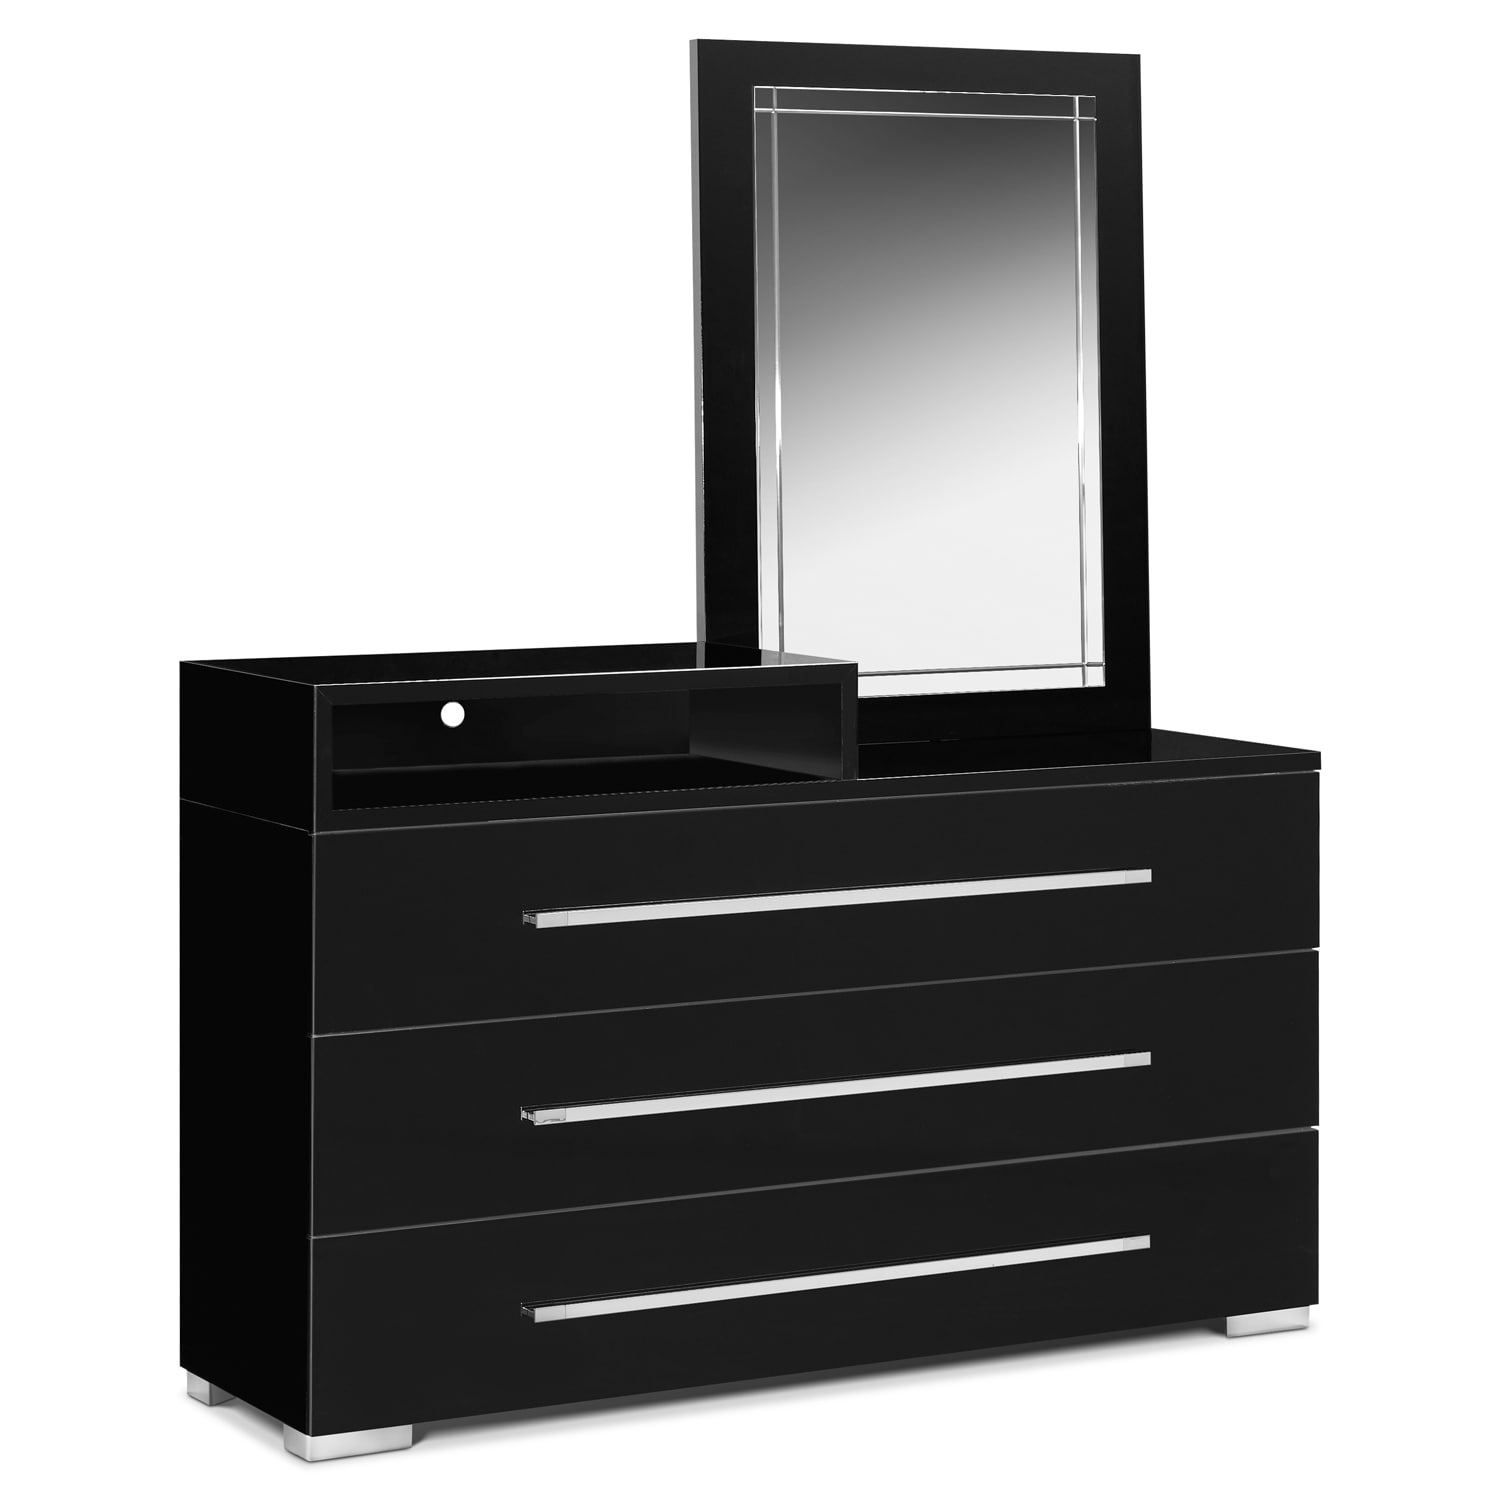 Dimora Dresser With Deck And Mirror   Black By Factory Outlet